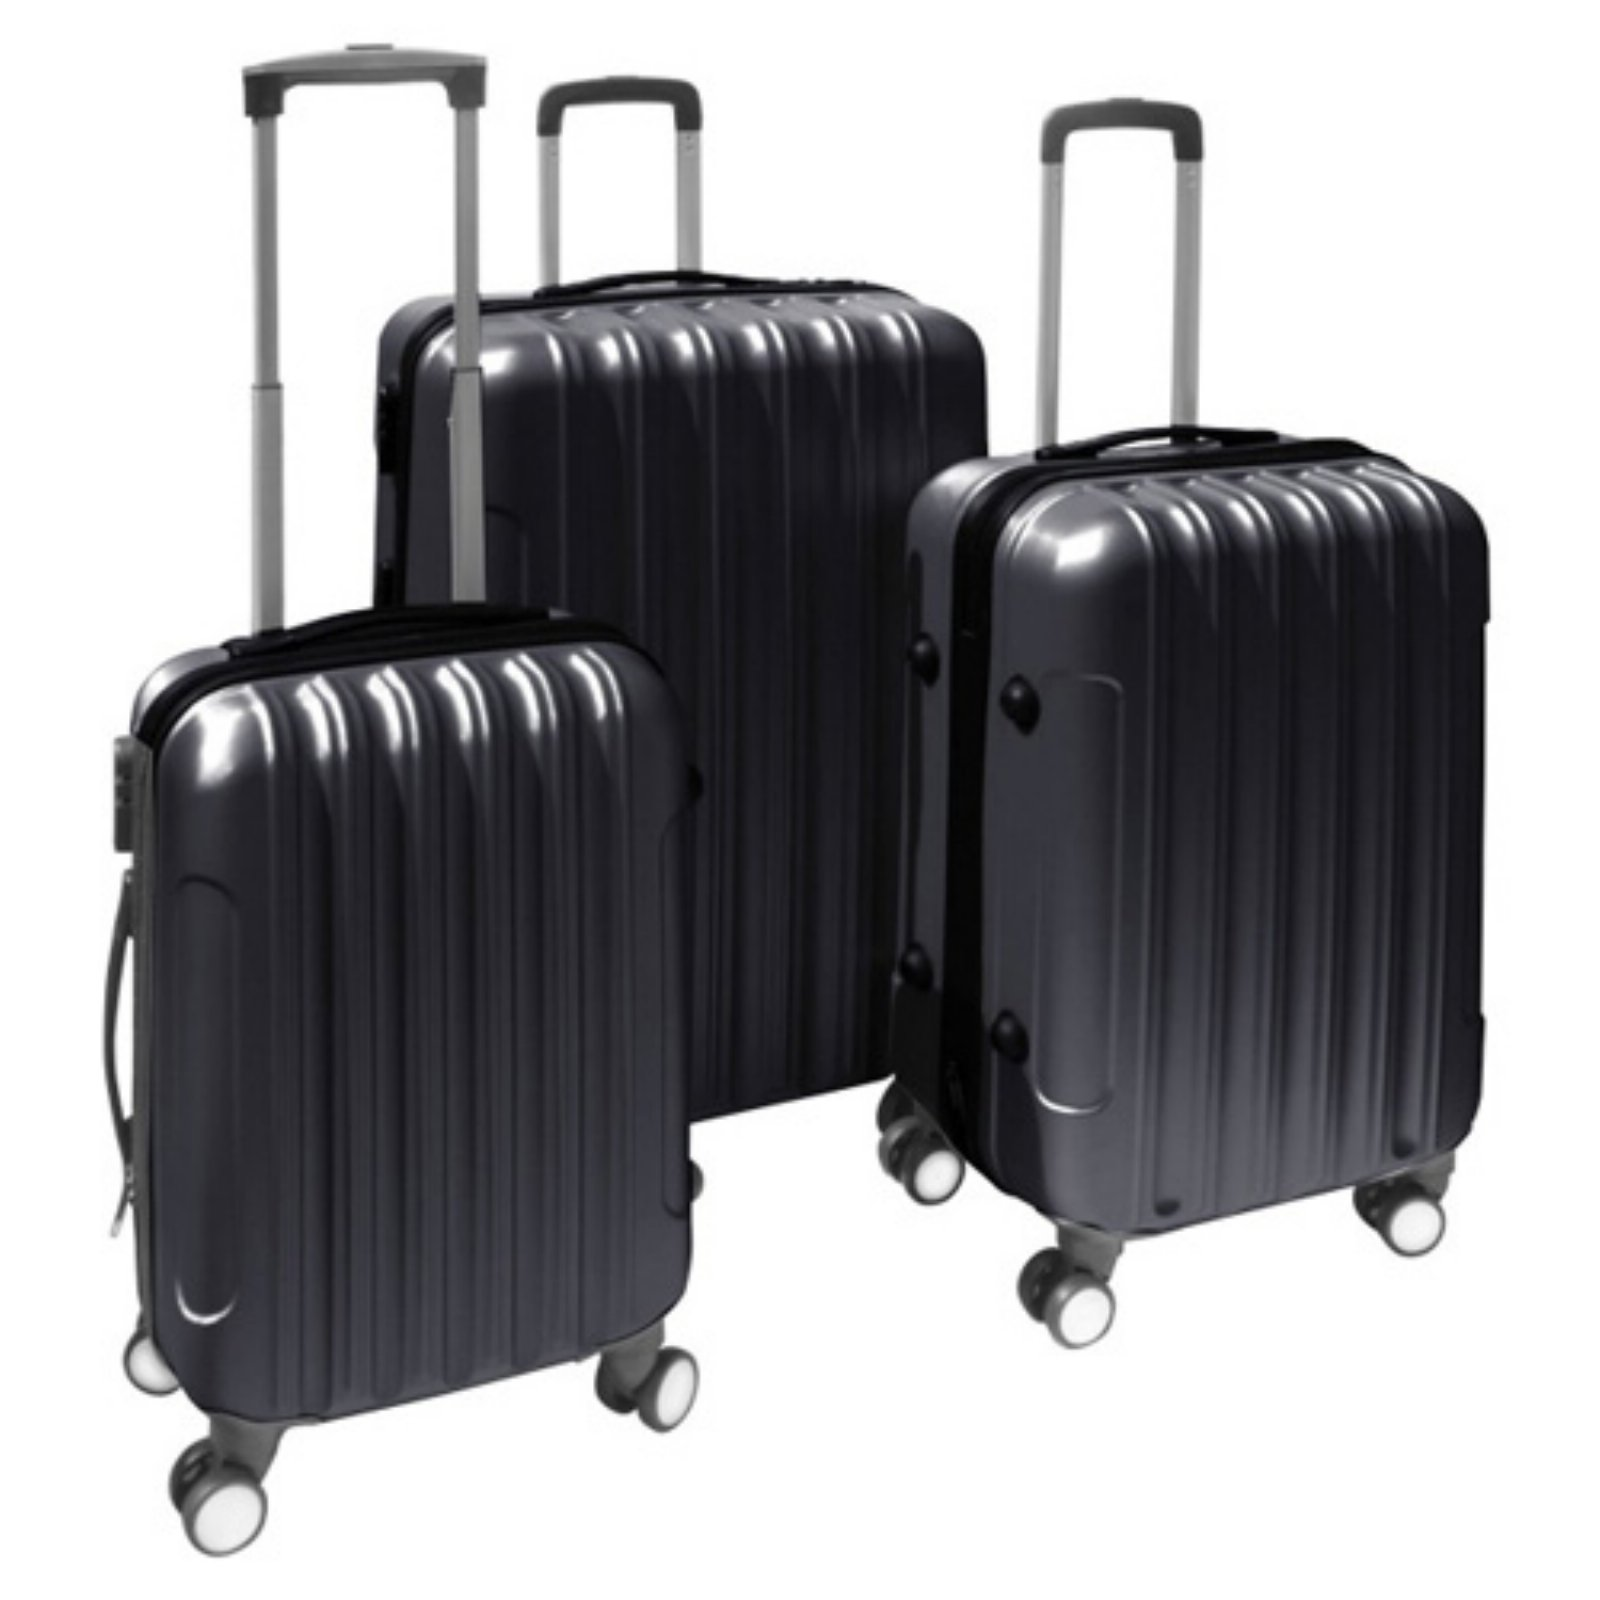 ALEKO 3-Piece Luggage Travel Bag Set, Black